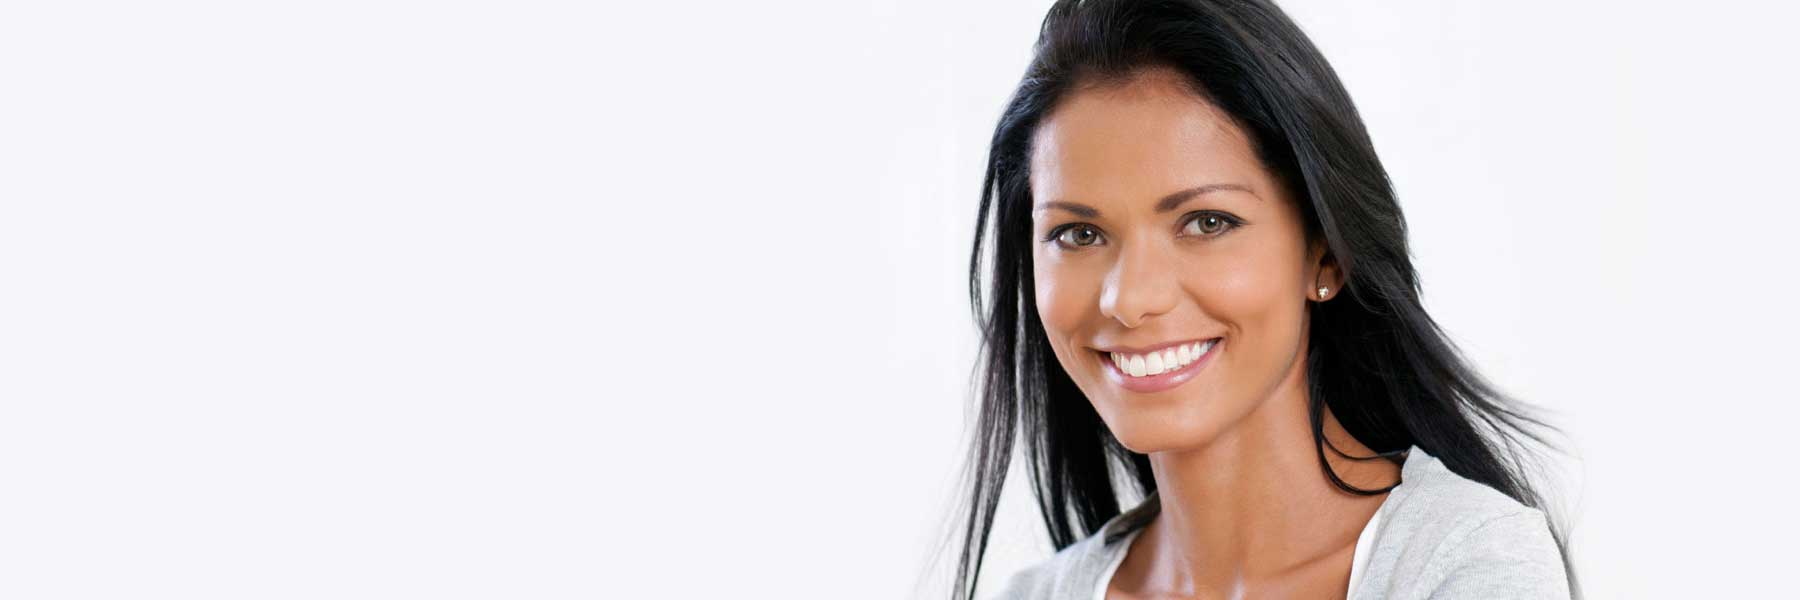 Dental Cleanings and Periodontal Treatment in Seattle banner image